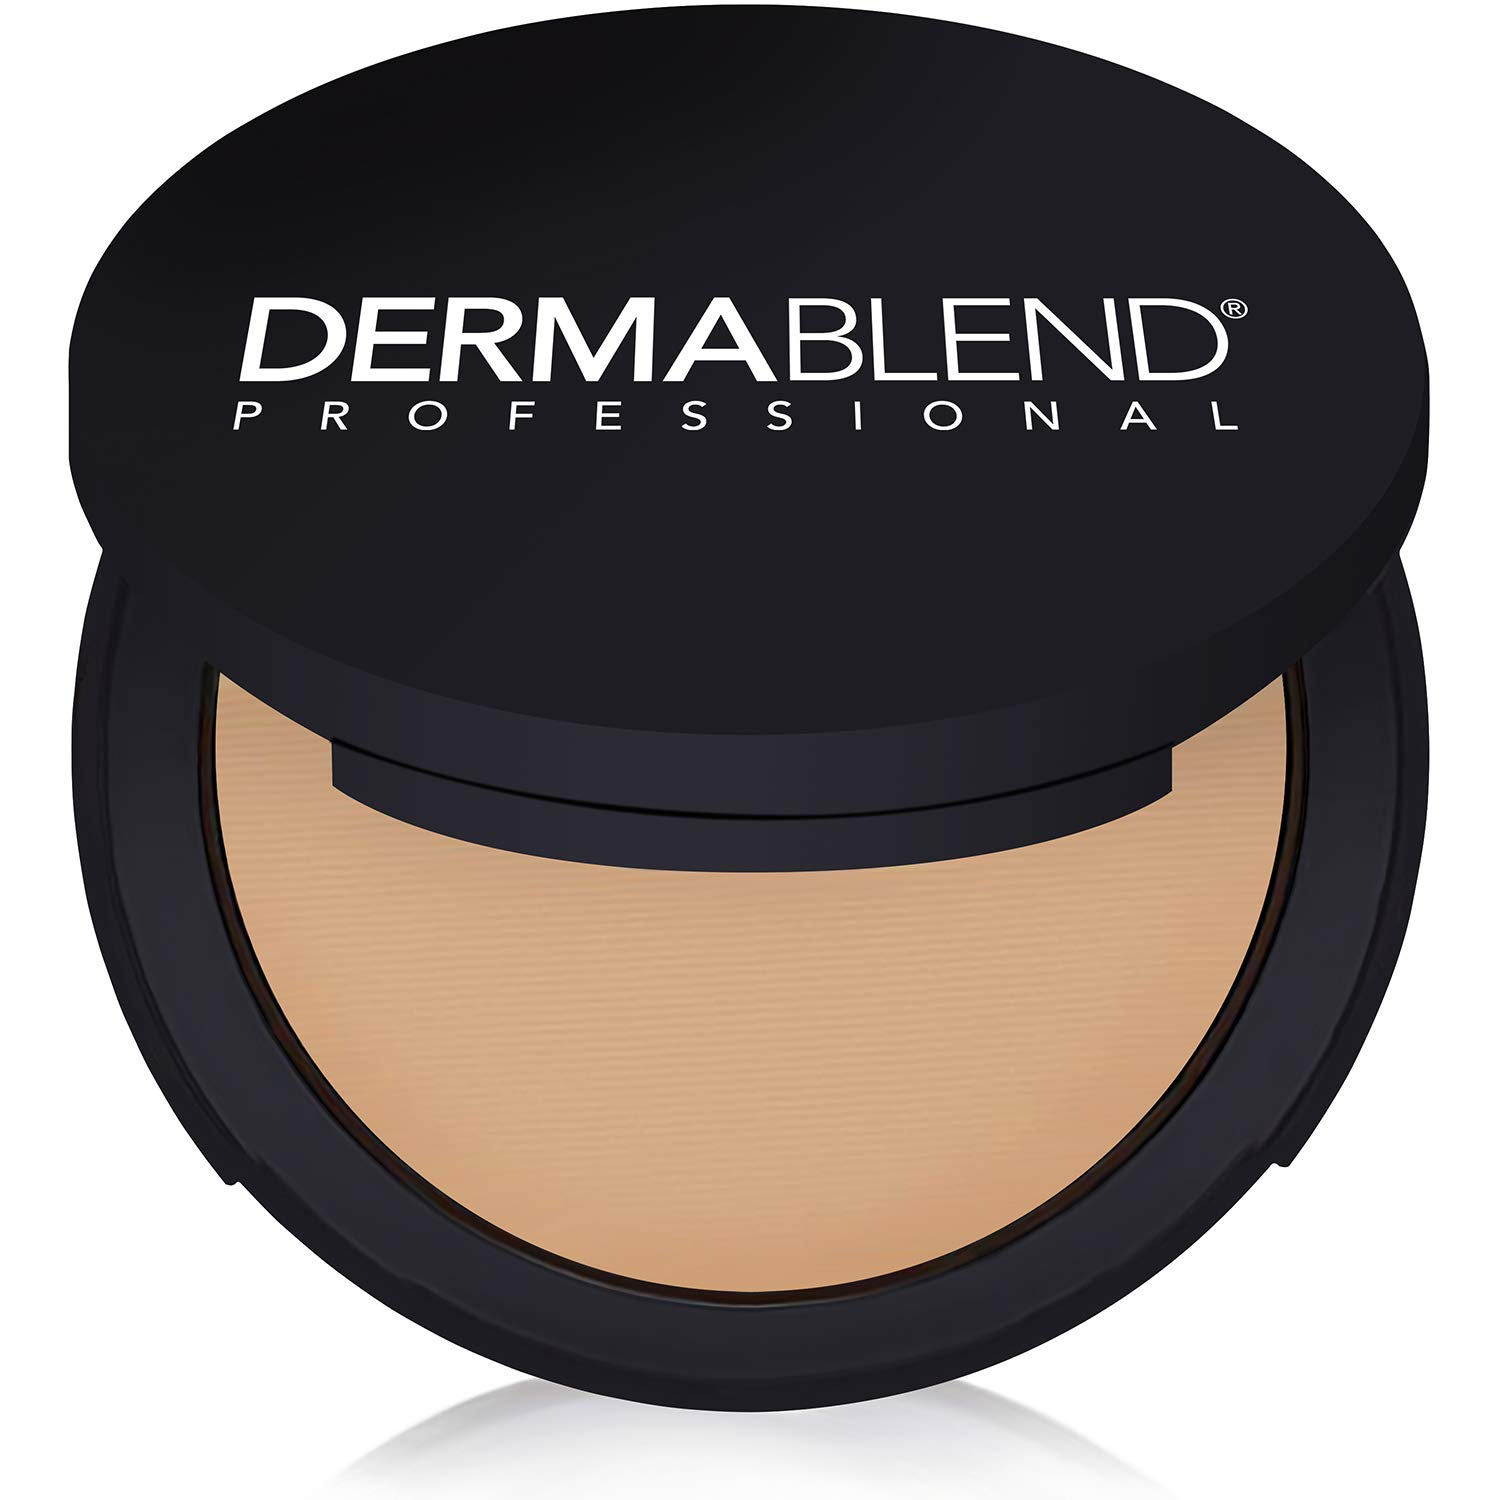 Dermablend Intense Powder Camo Mattifying Foundation